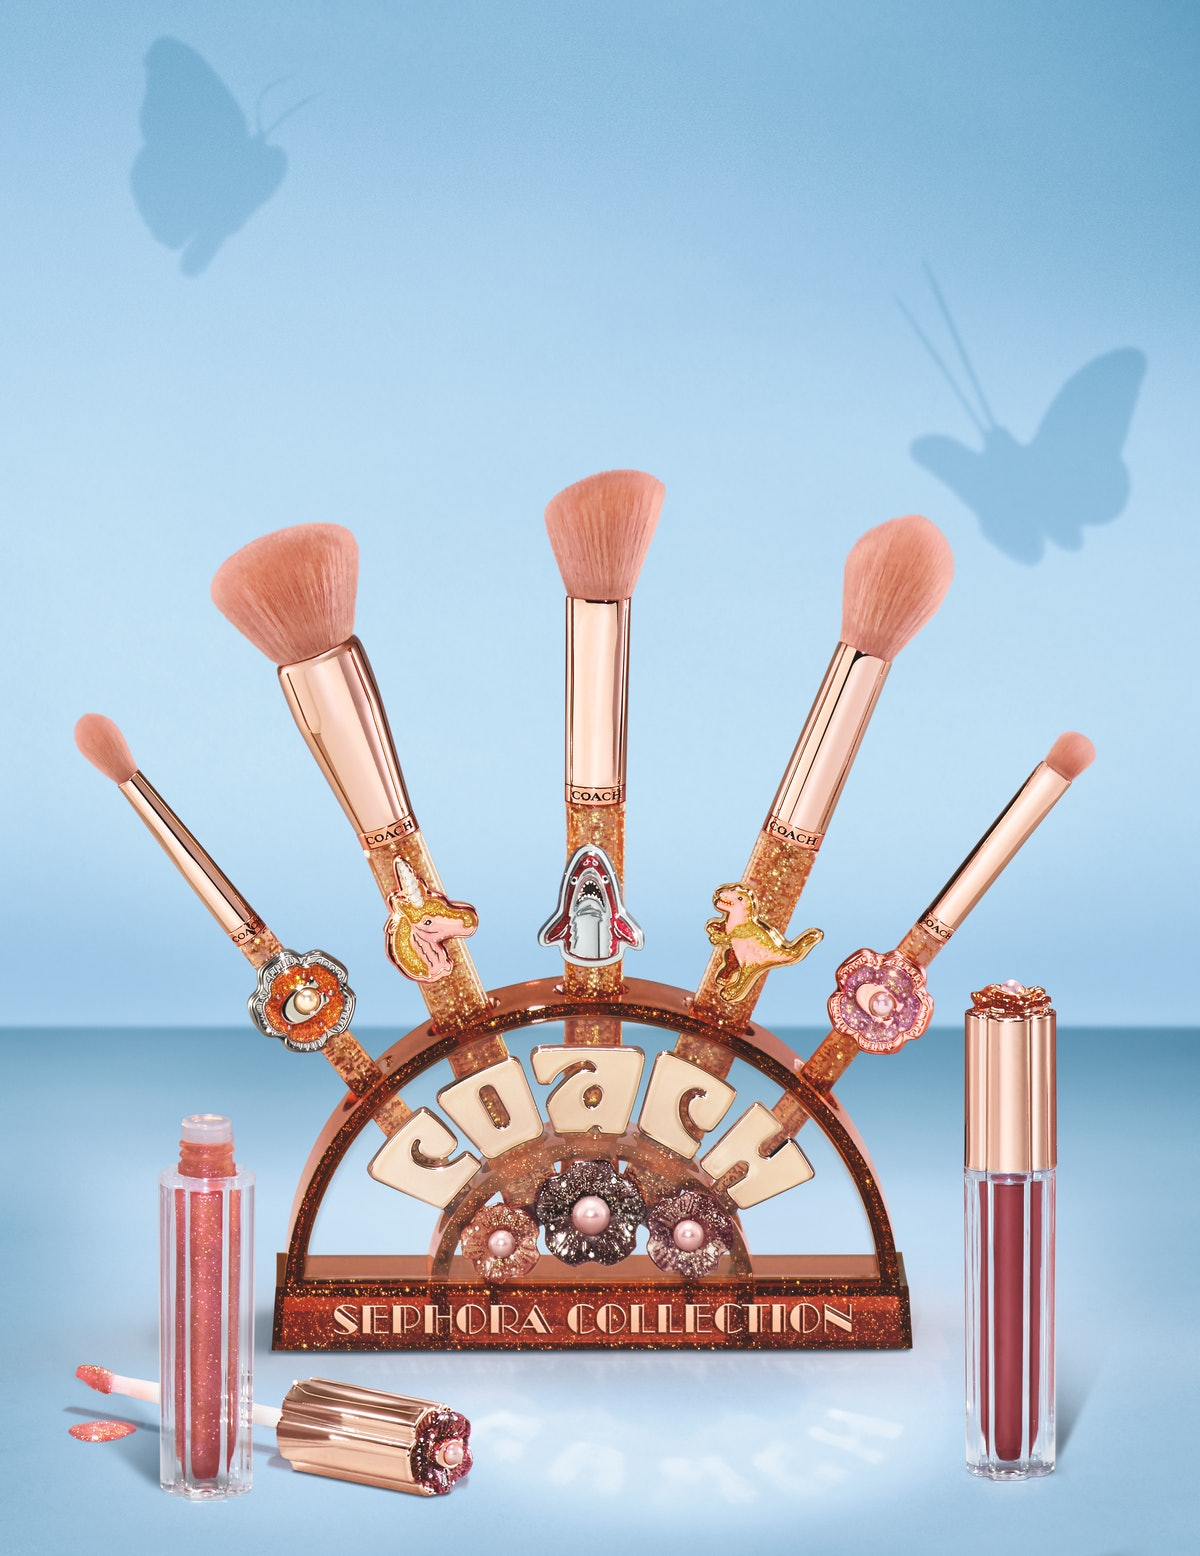 The COACH x Sephora brushes and brush stand accompanied with two of the lipglosses.